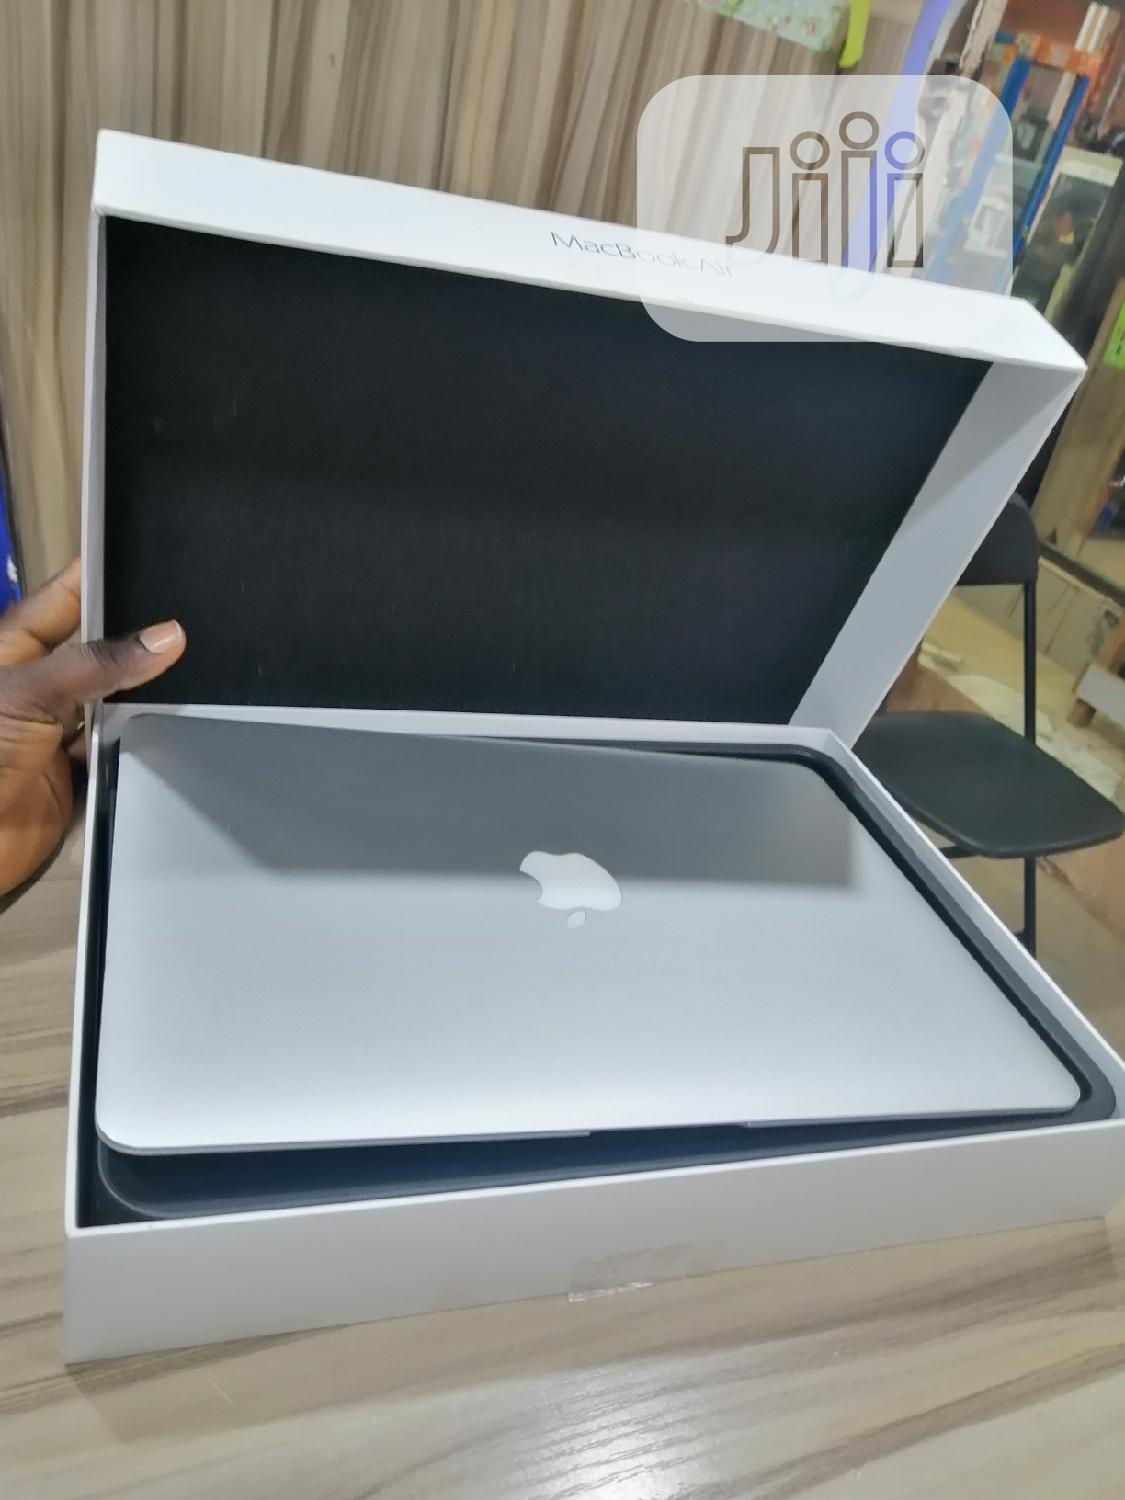 Laptop Apple MacBook Air 8GB Intel Core i7 SSD 256GB | Laptops & Computers for sale in Wuse, Abuja (FCT) State, Nigeria